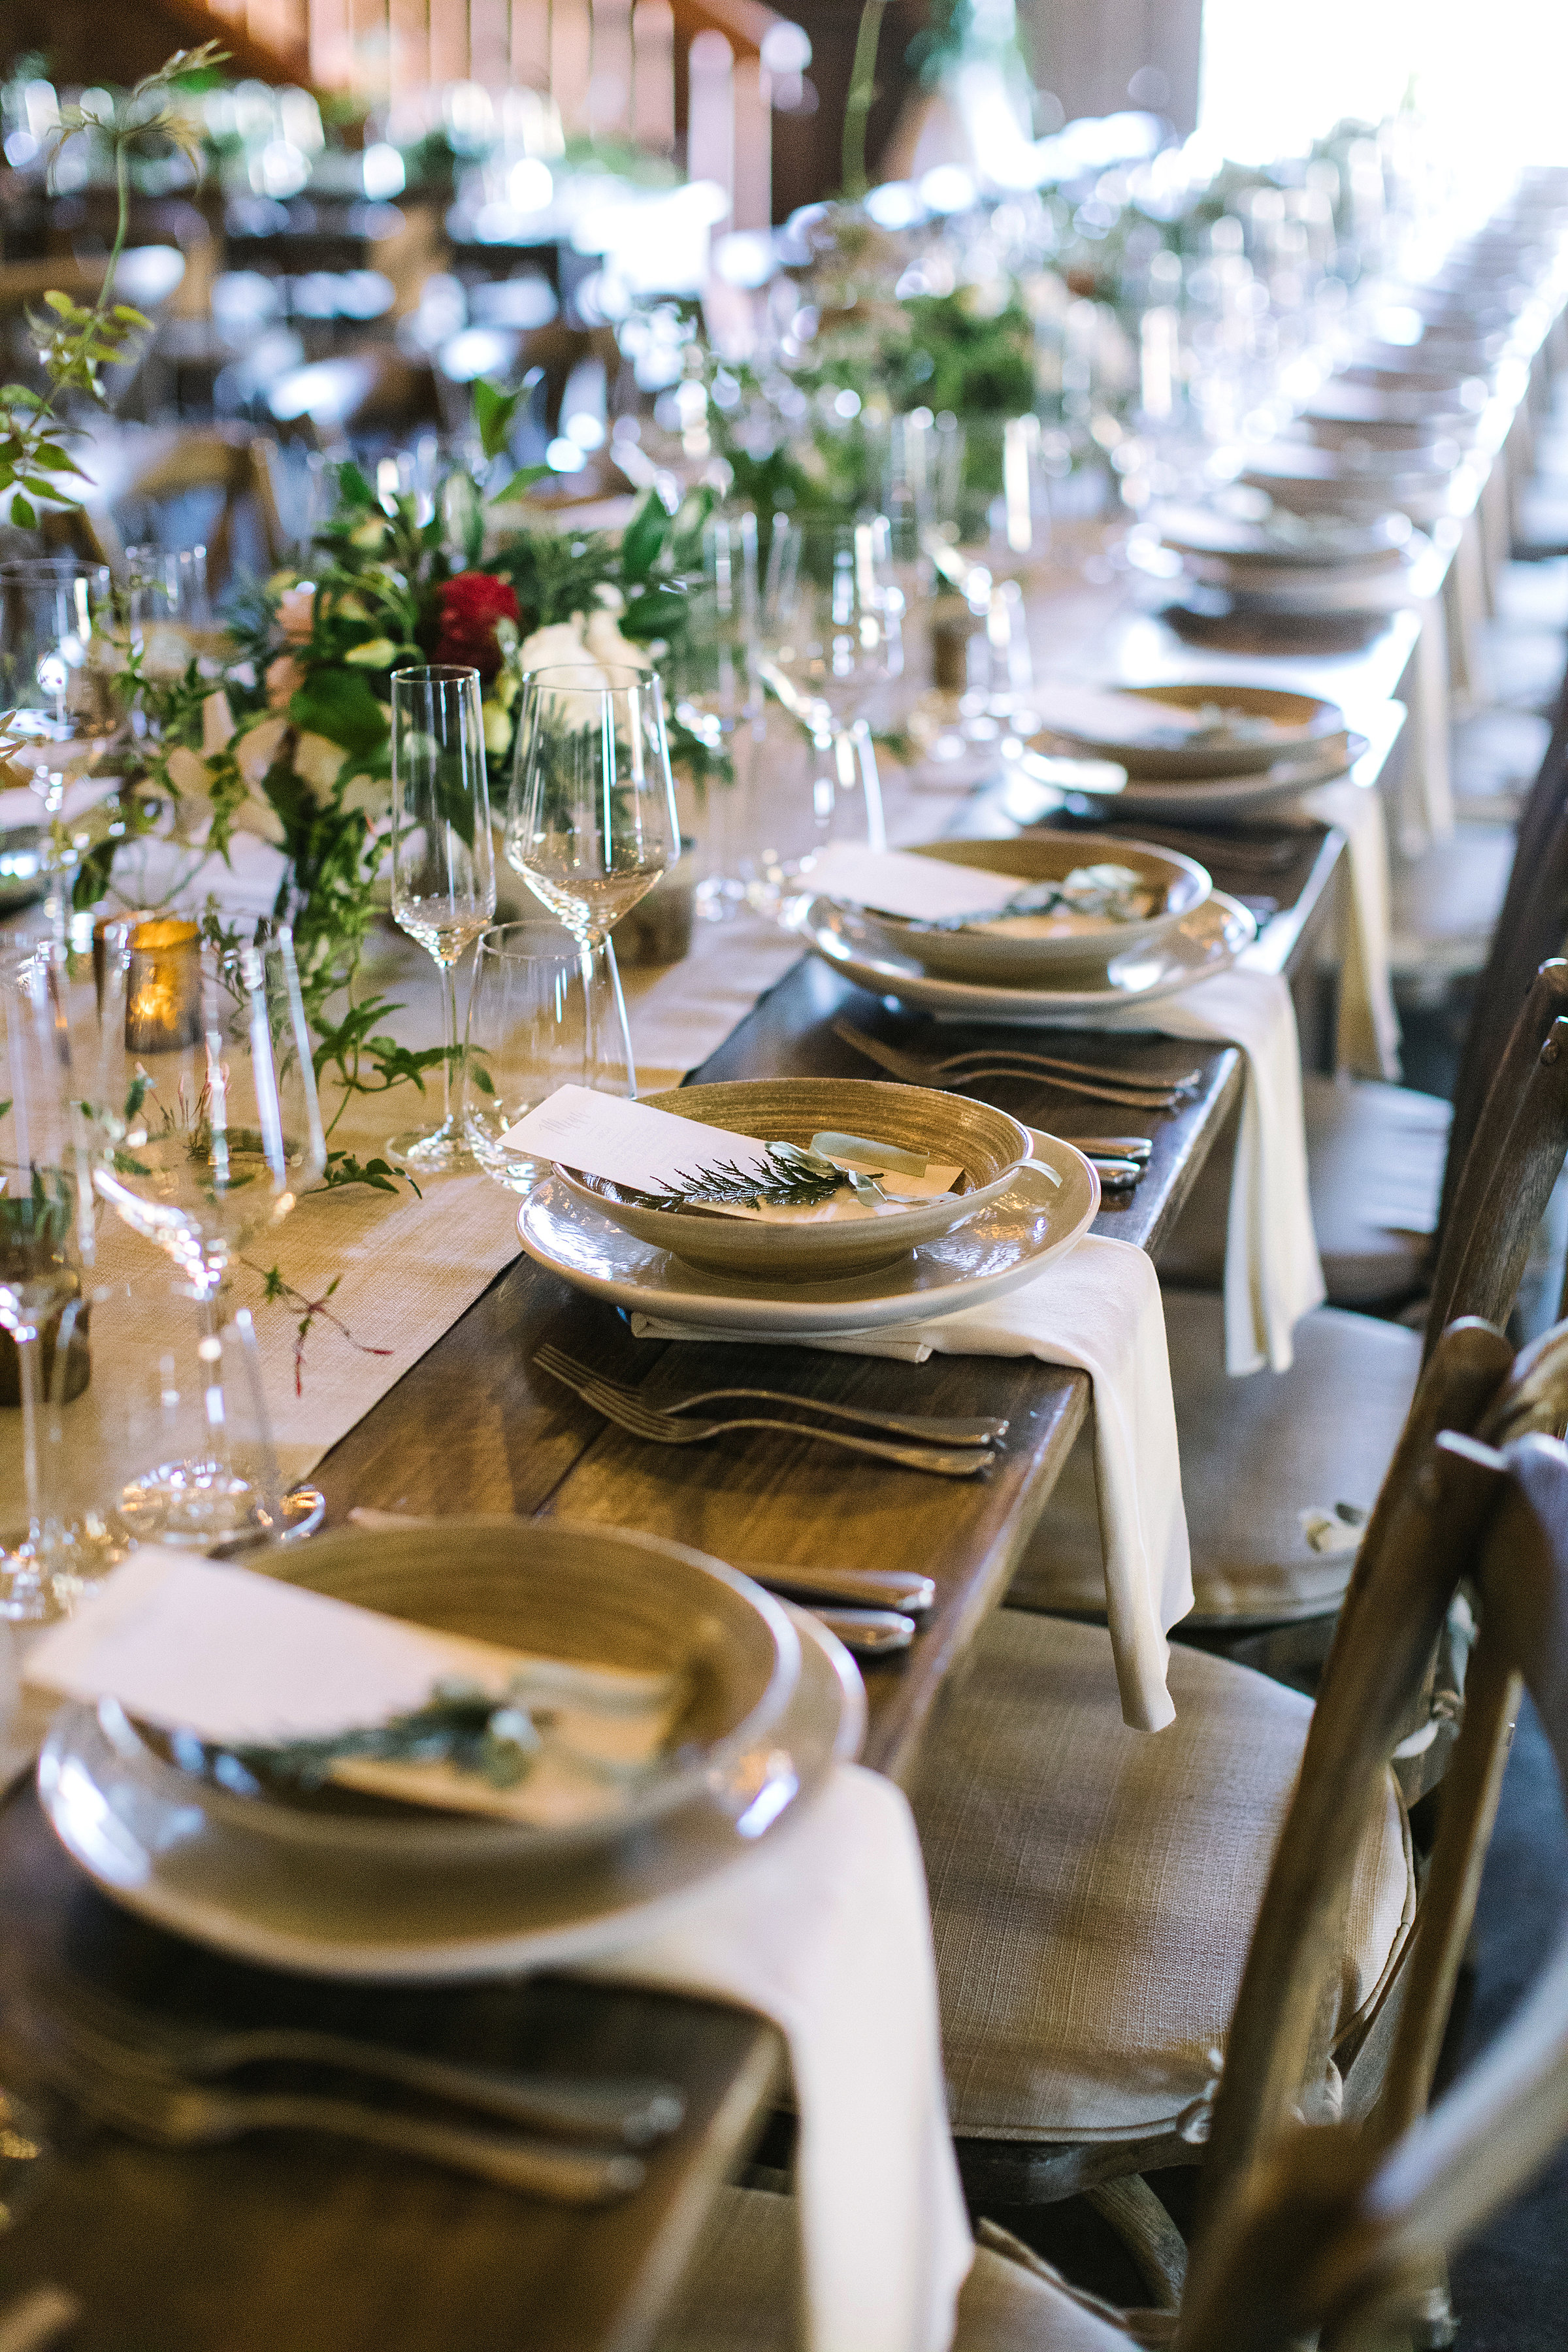 Fine art floral designs for a romantic tablescape at Olympia's Valley Estate by Venn Floral photographed by The Edges.